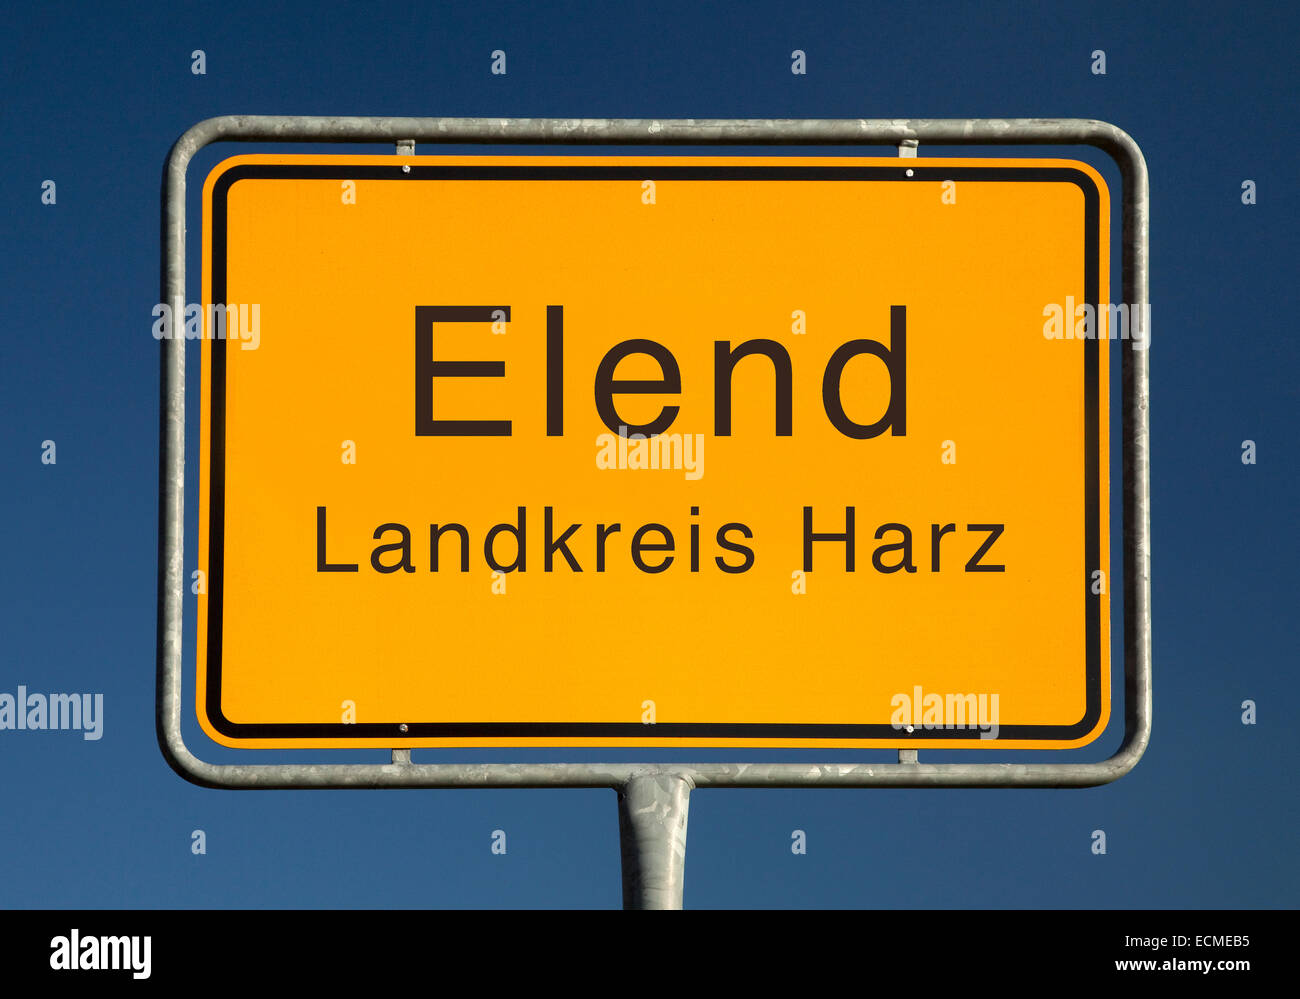 City limits sign, Elend or misery, district of Harz, Saxony-Anhalt, Germany Stock Photo